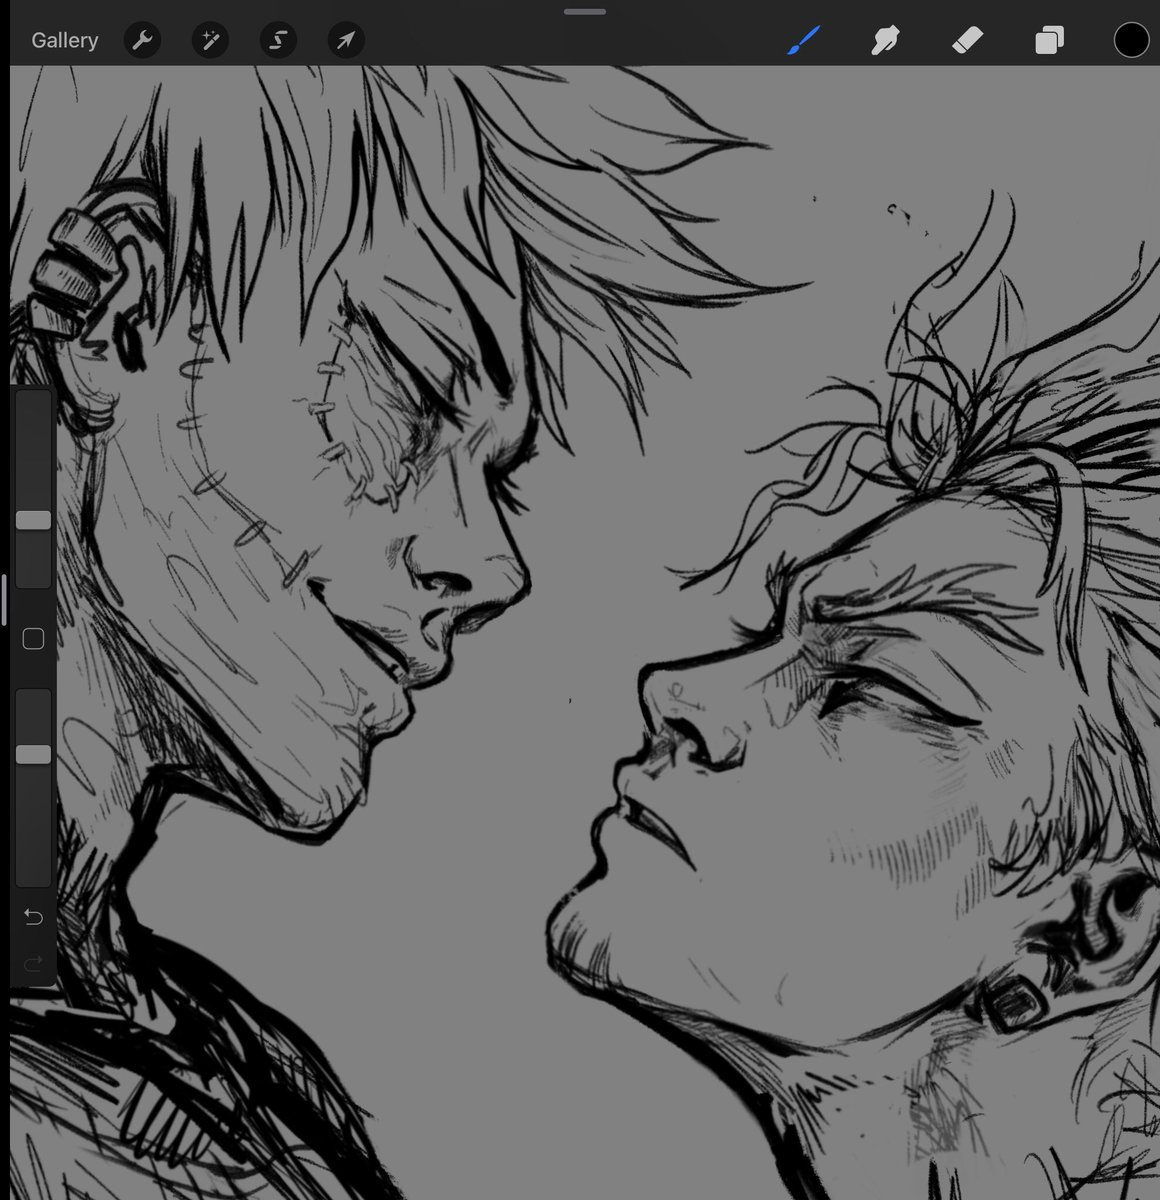 How much homoerotic energy can I fit into a single picture  #wip<br>http://pic.twitter.com/m4B5XBjxqR